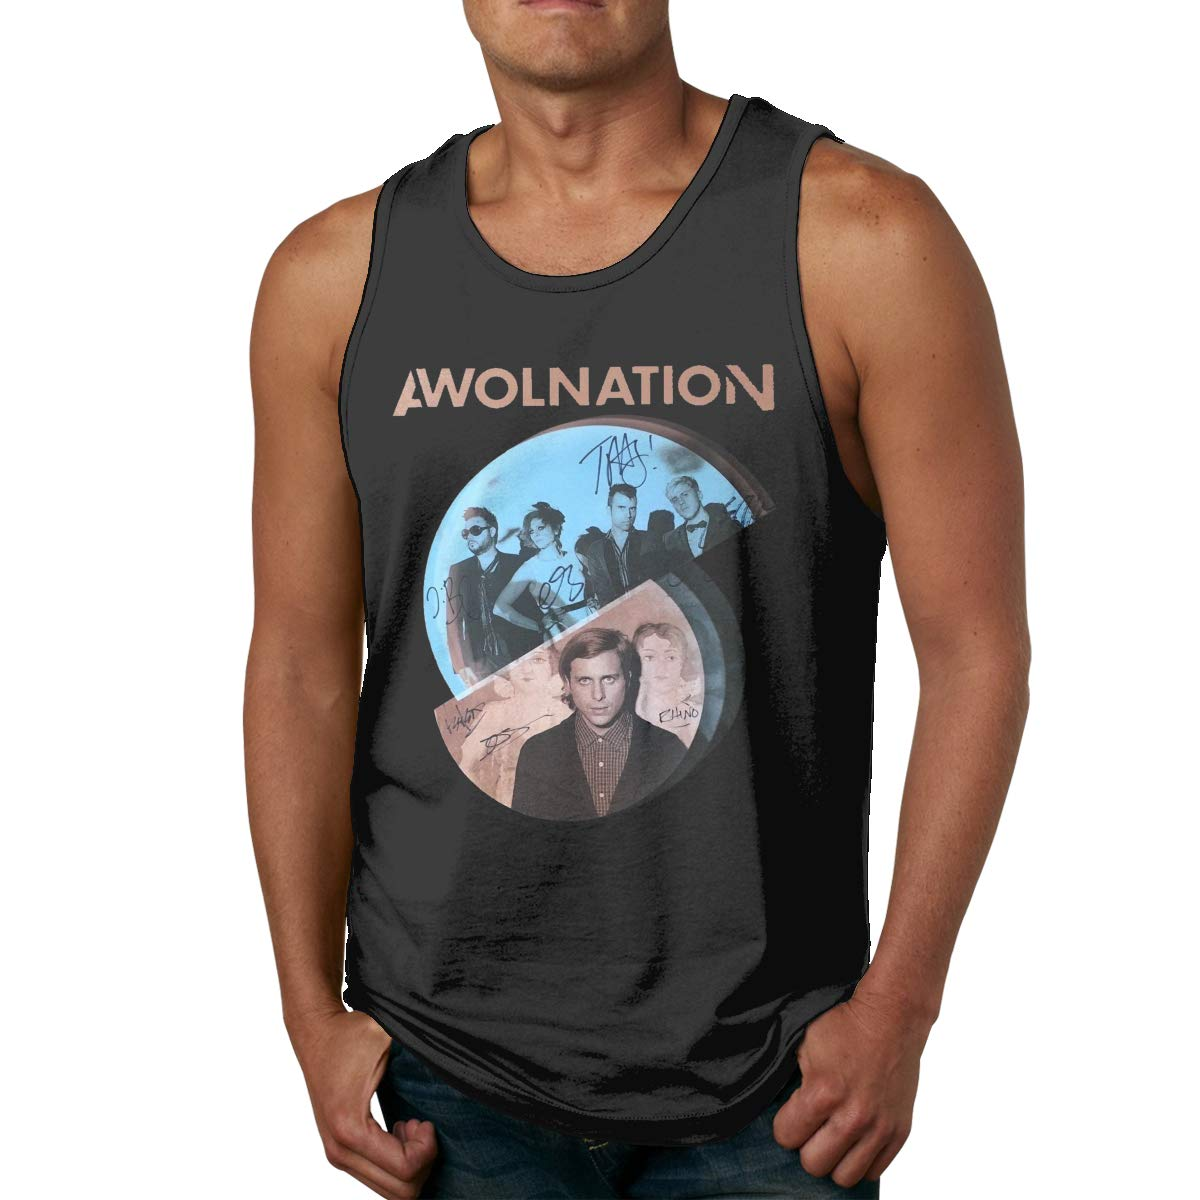 Awolnation Tank Vest Mans Sports Tank Tops T Shirts